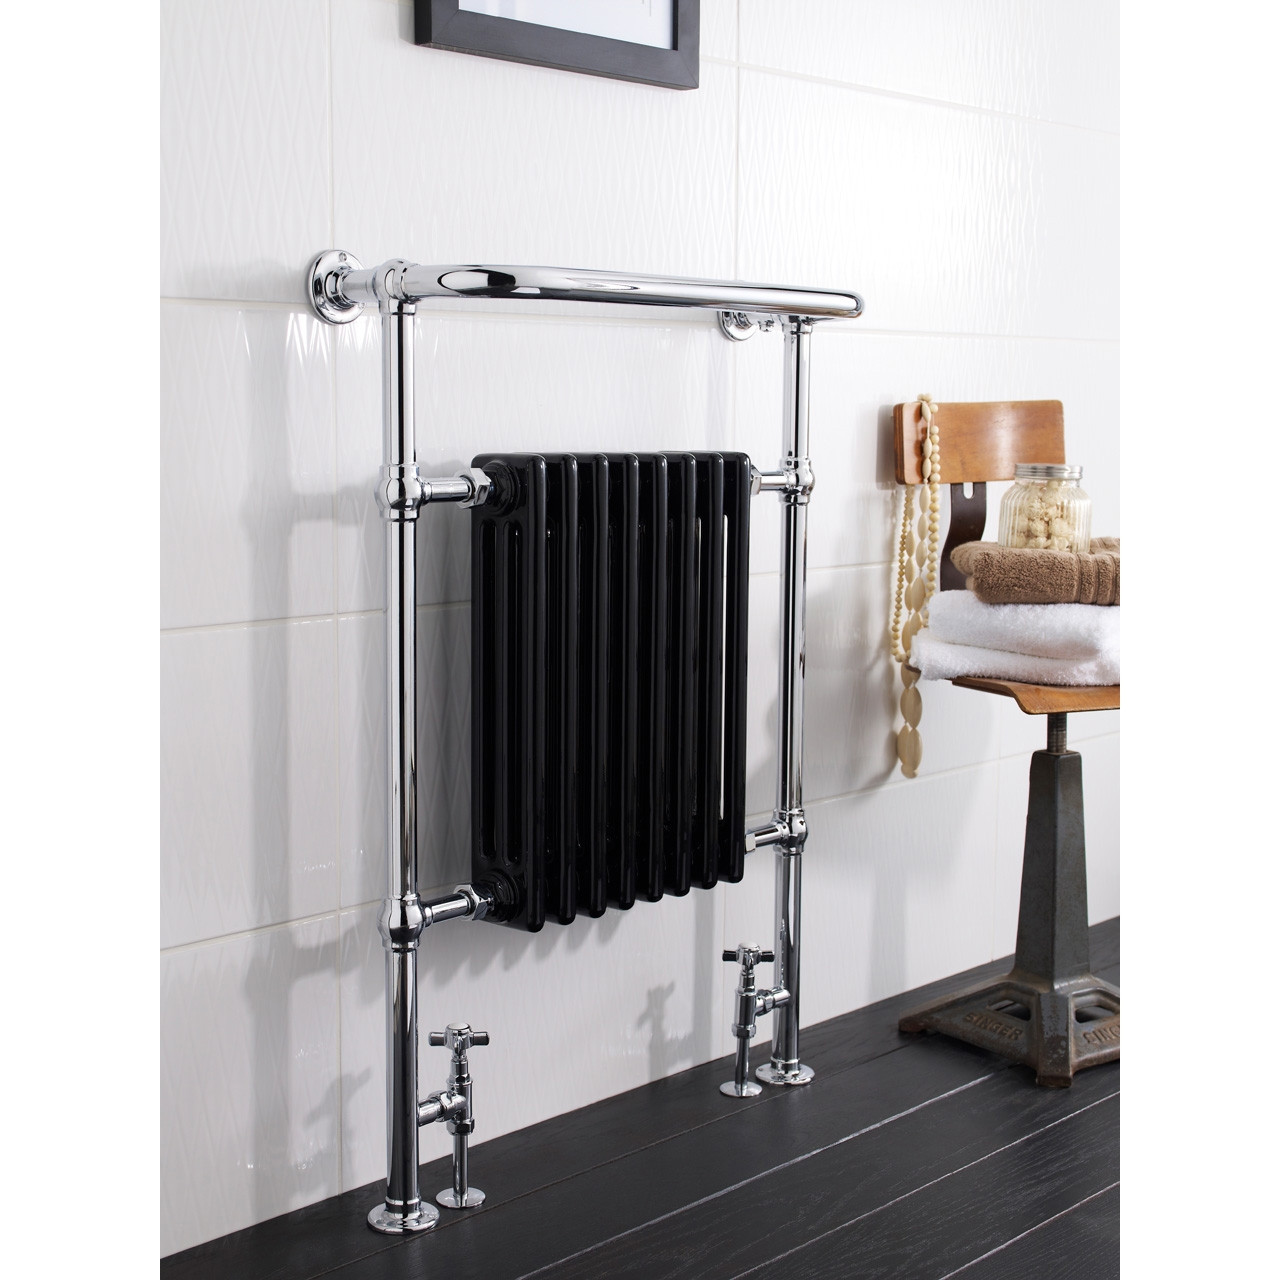 Hudson Reed Marquis Radiator Complete with Black Insert 960mm x 665mm - HT702